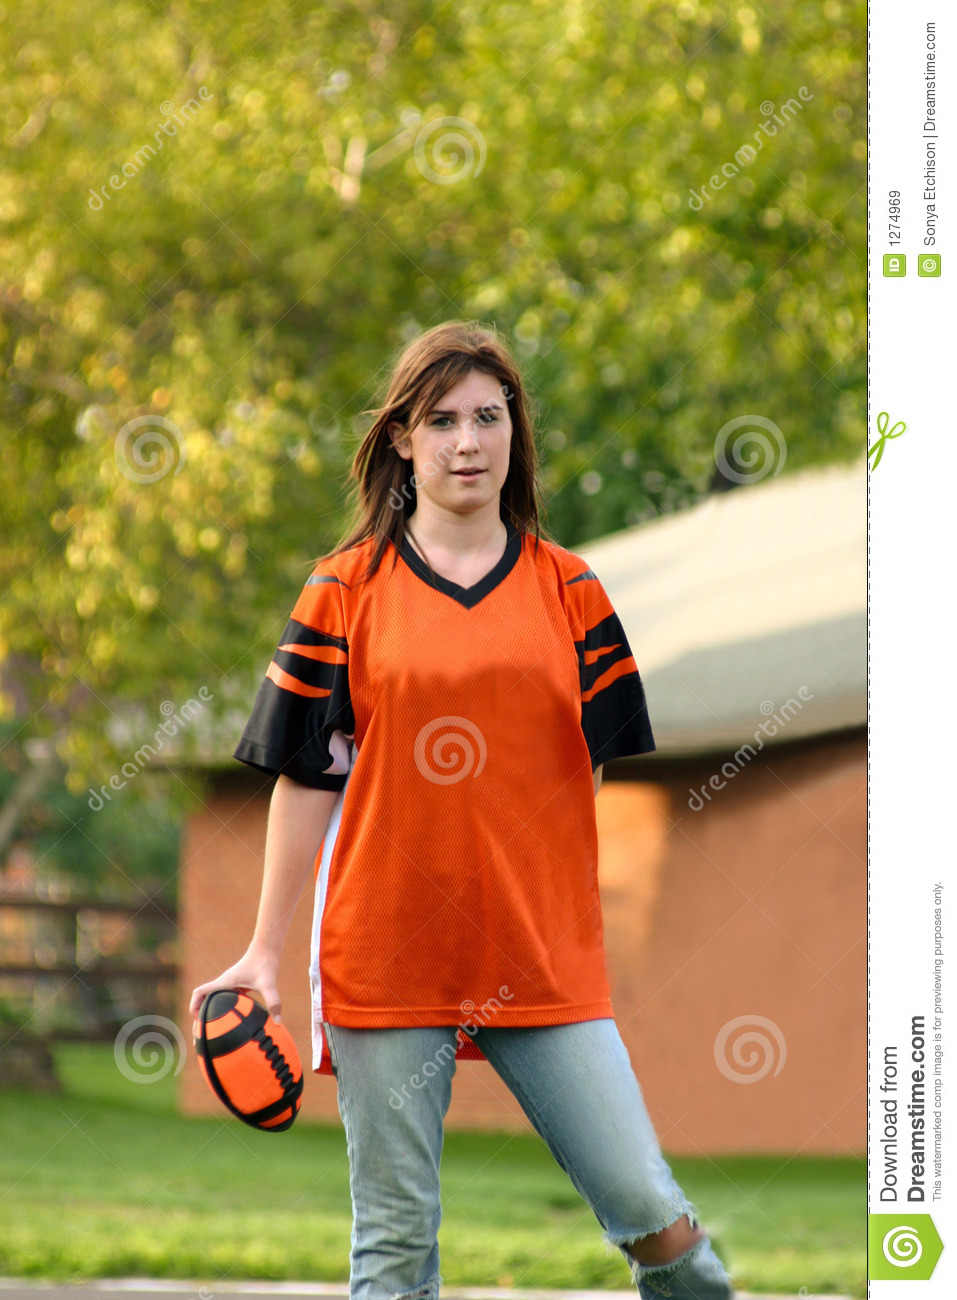 Fille jouant au football